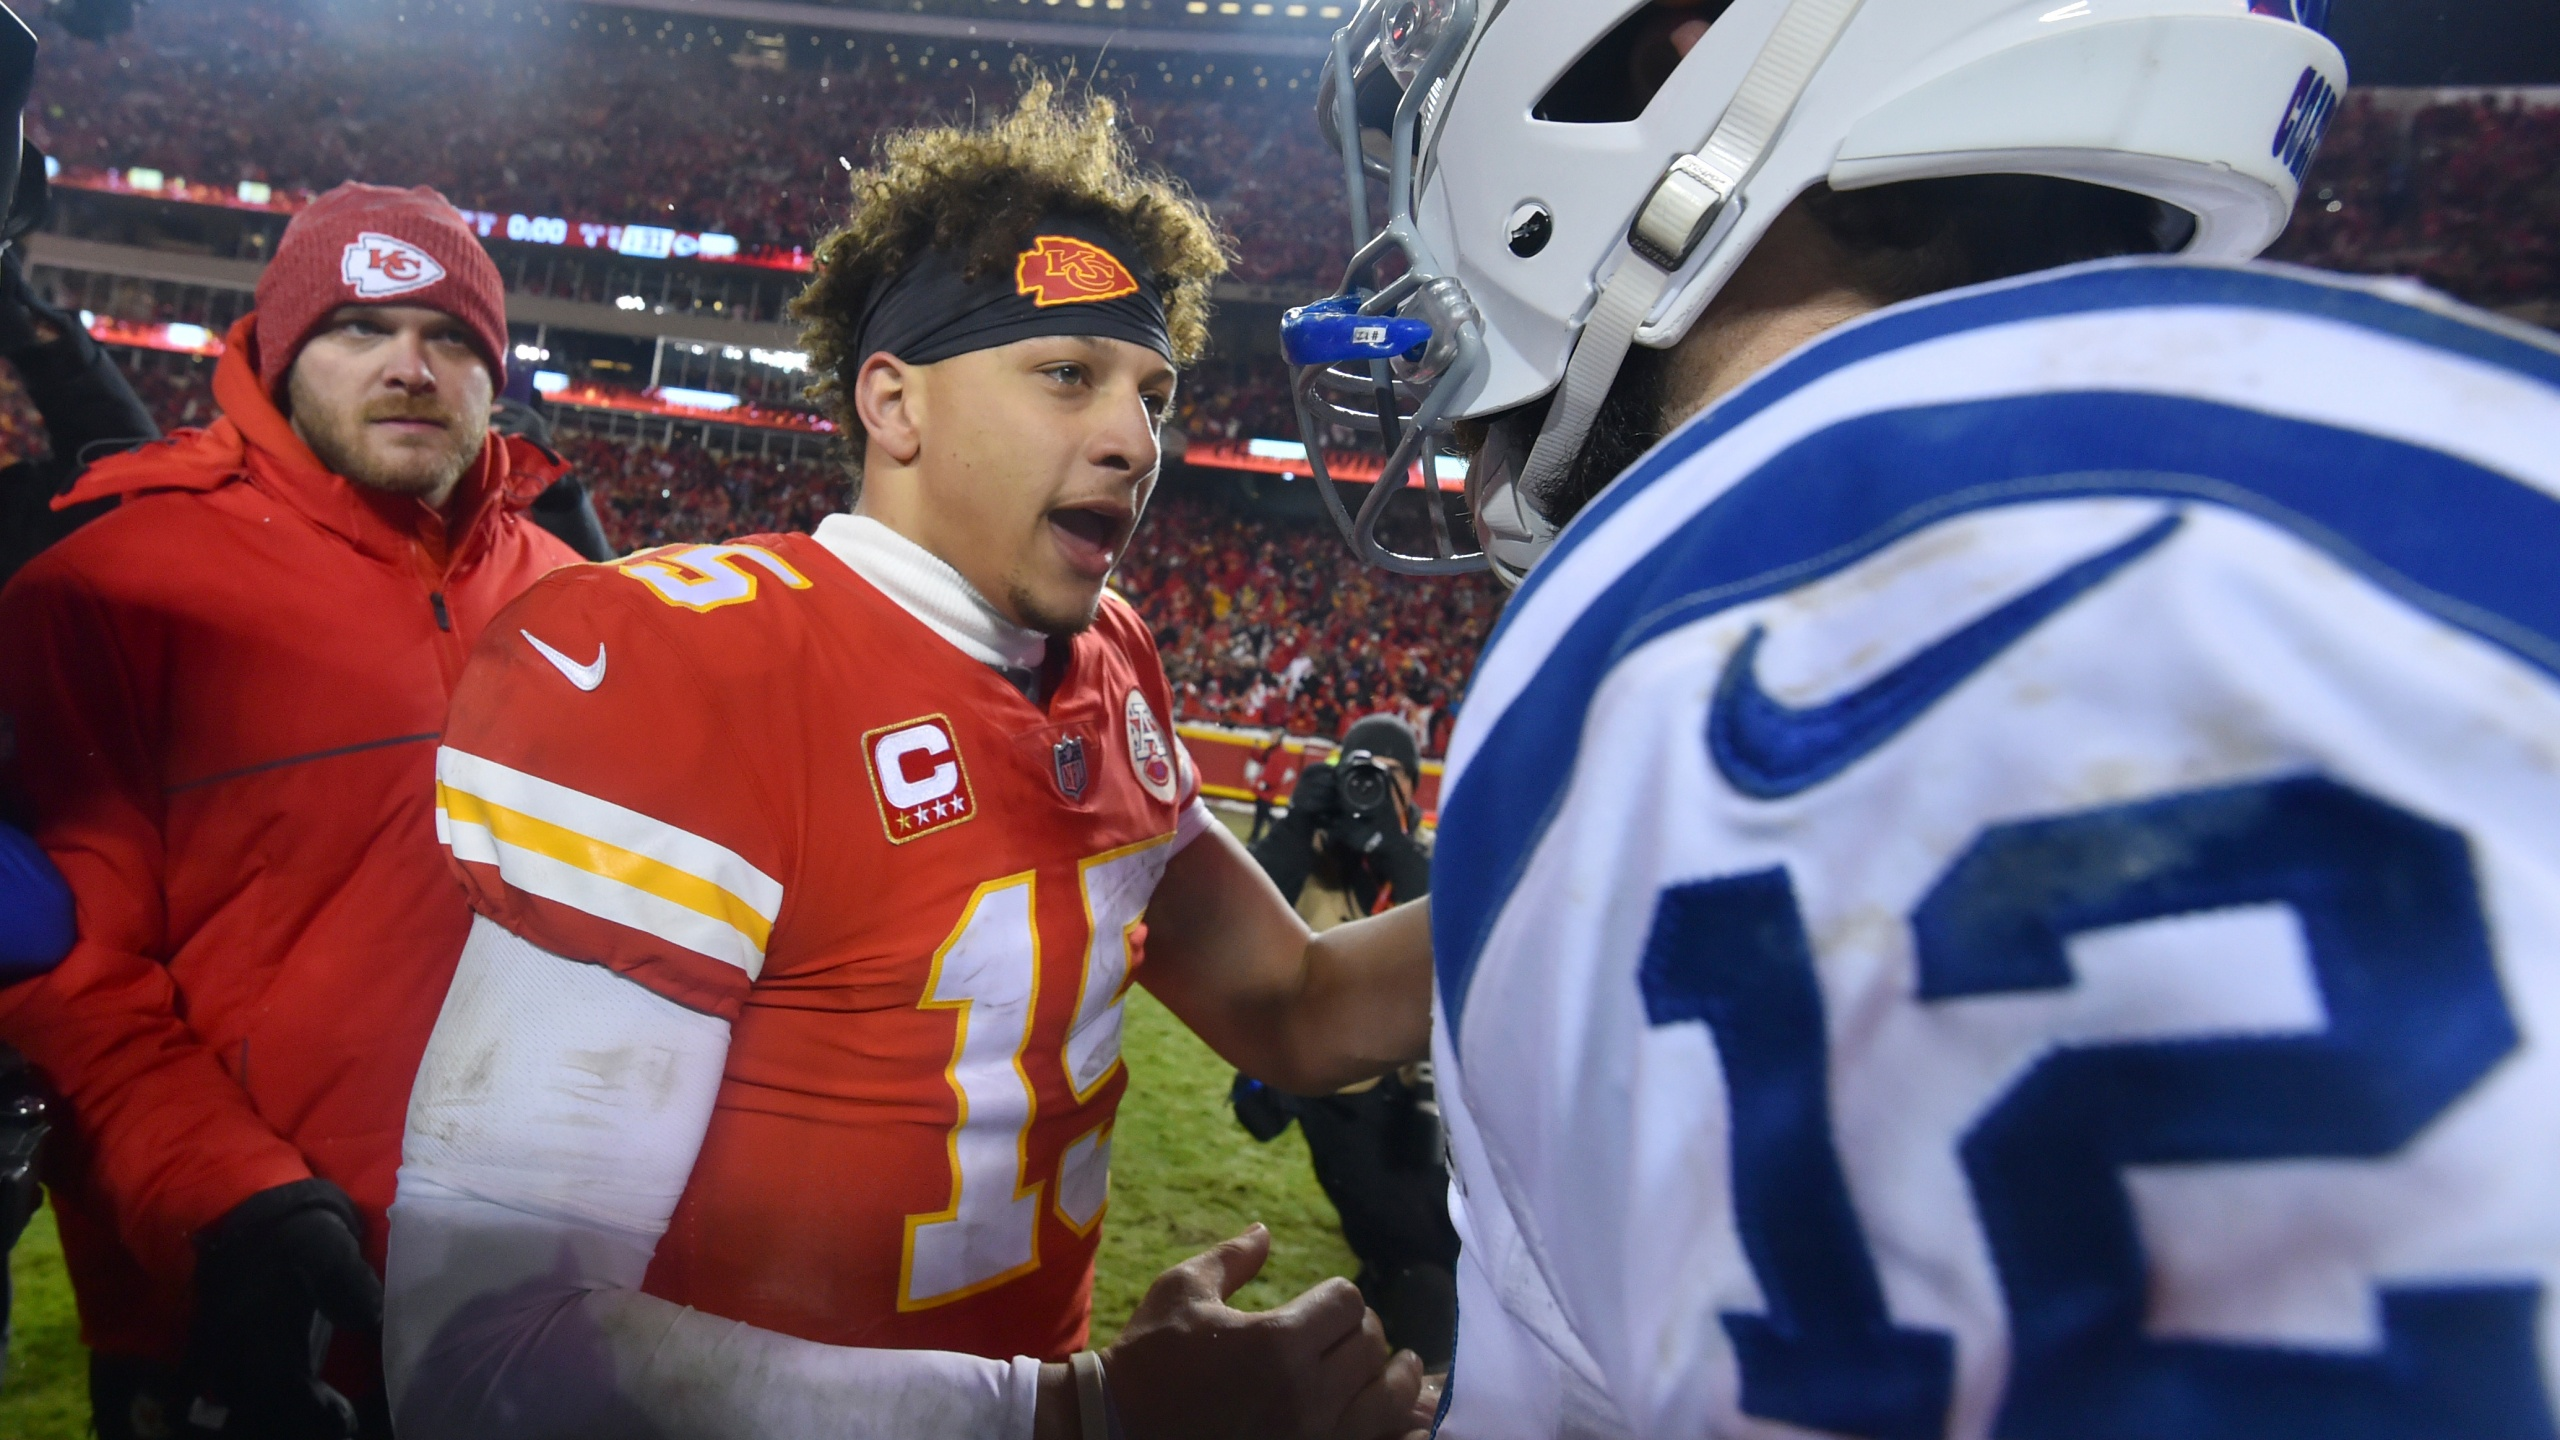 Colts Chiefs Football_1547342743030